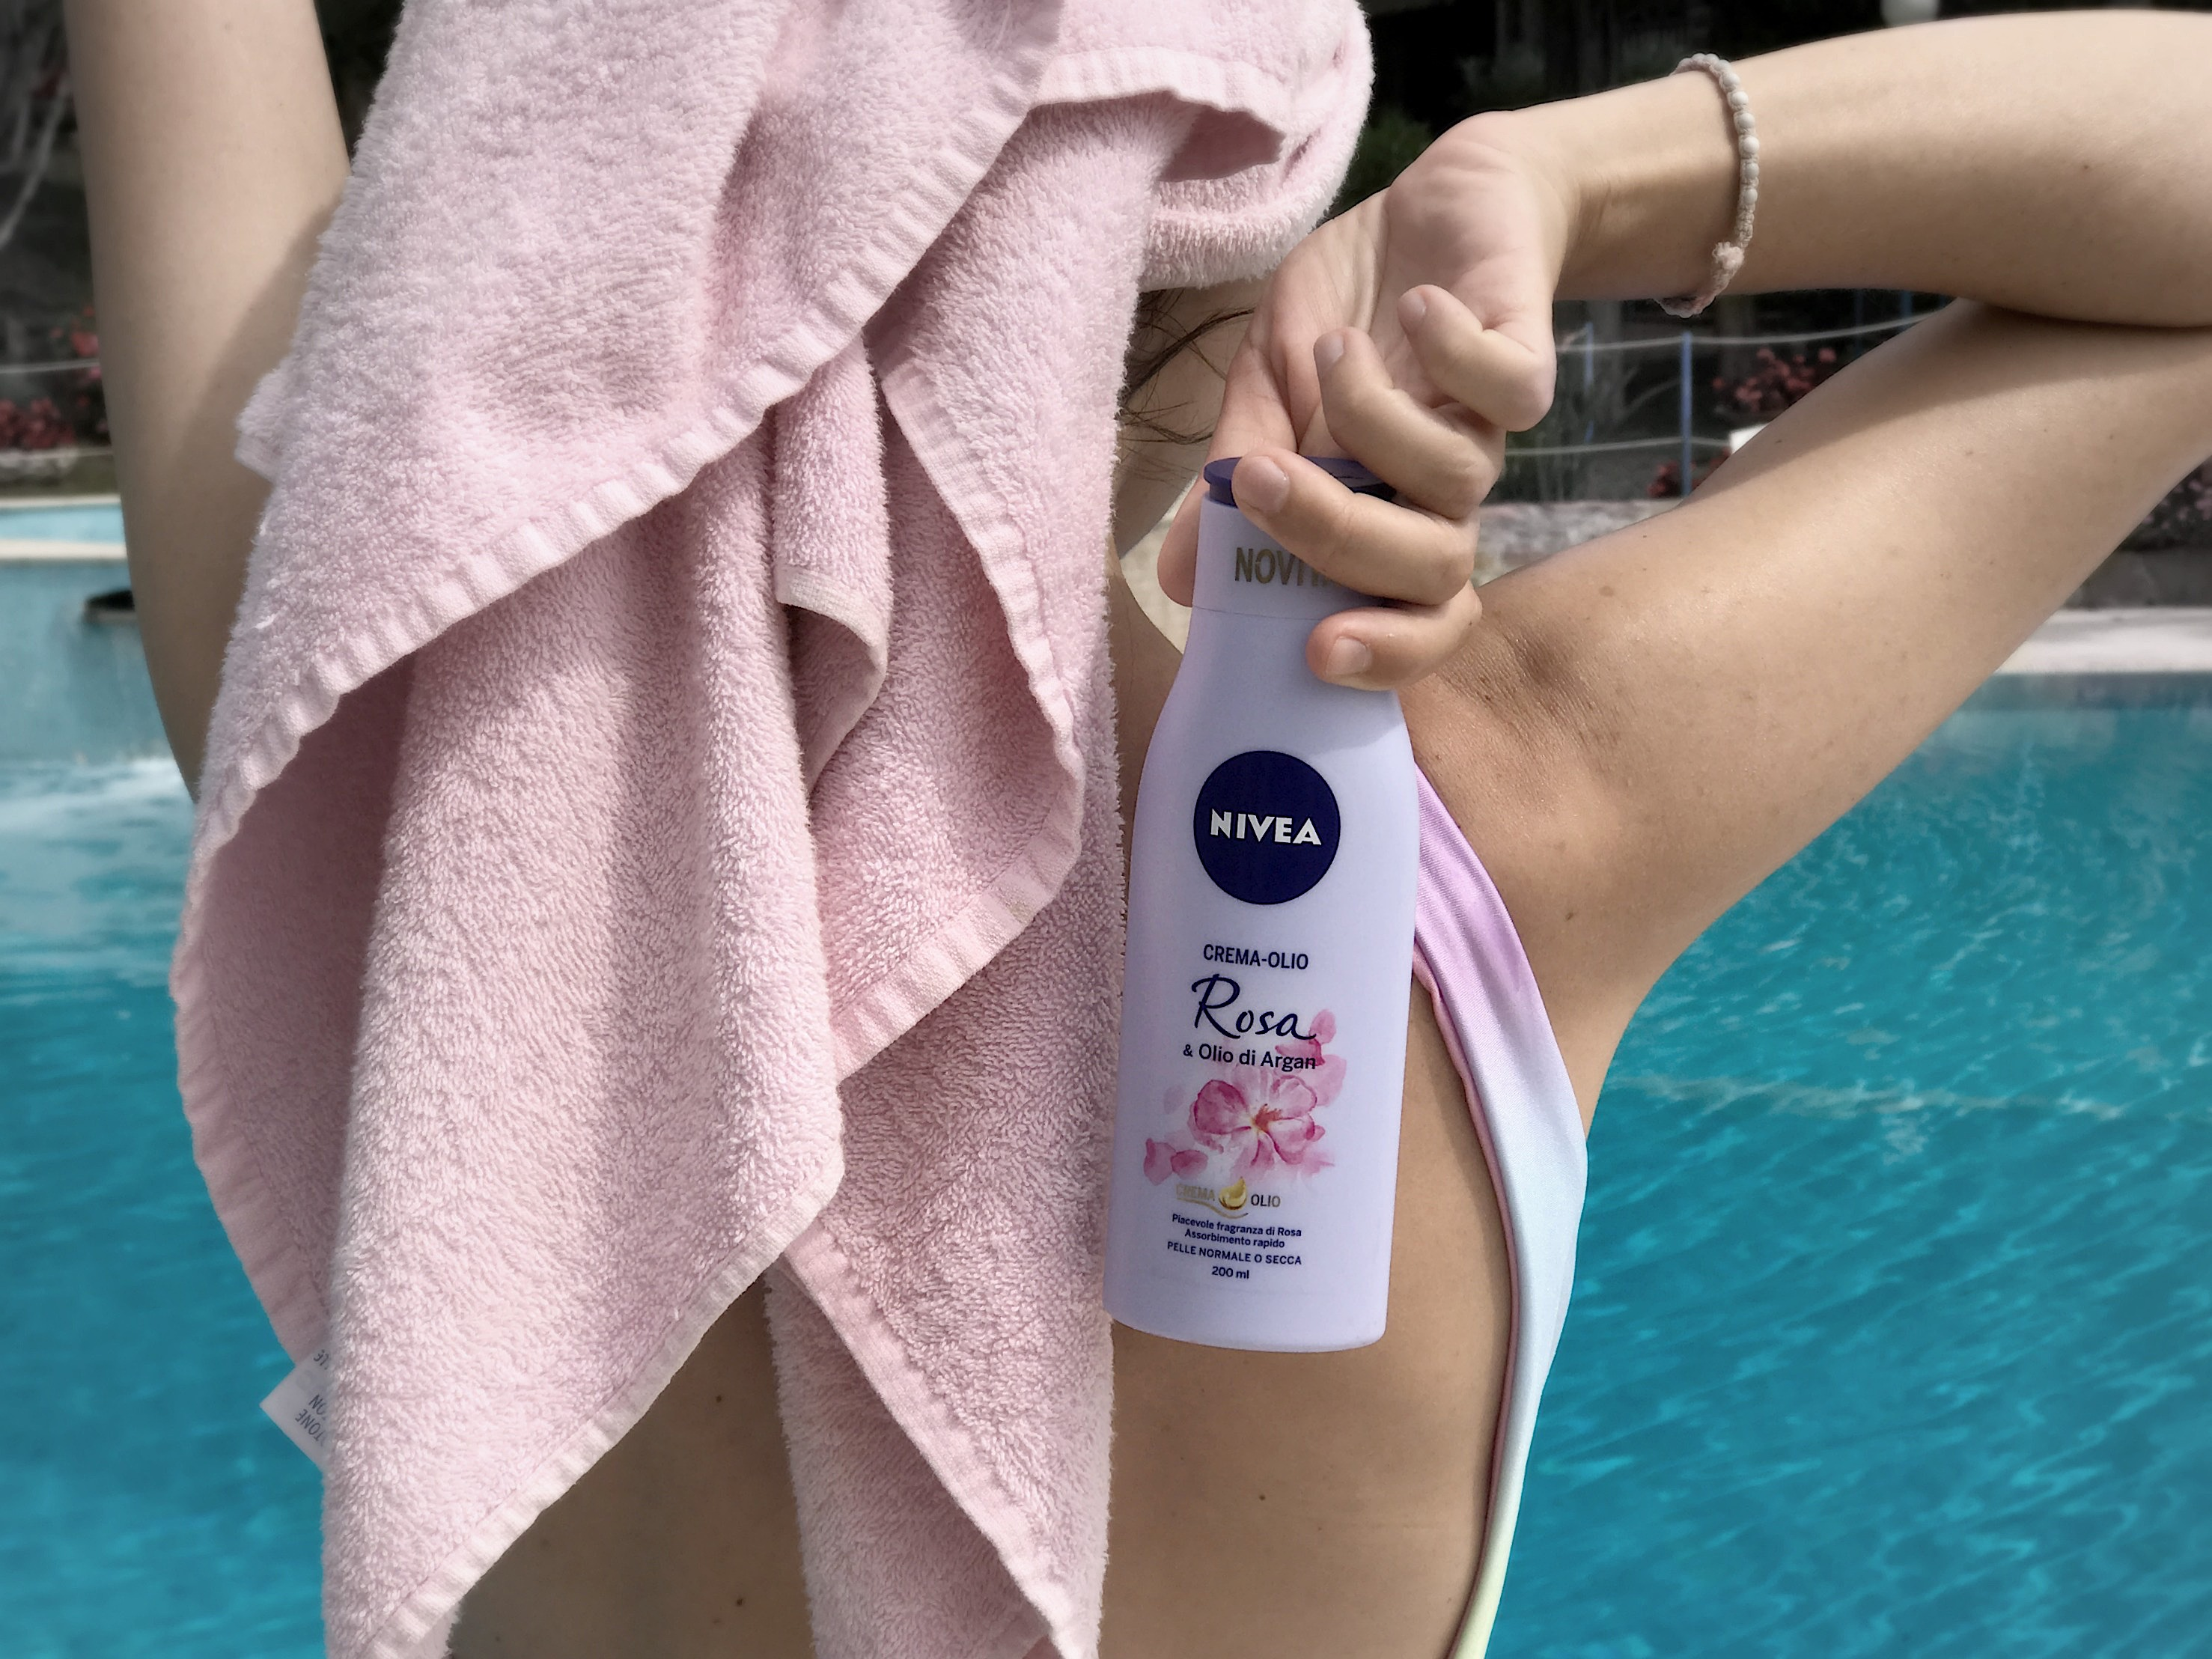 nivea crema-olio, theladycracy.it, elisa bellino, fashion blog italia, nivea crema olio rosa, fashion blogger italia, blogger moda, blog moda,